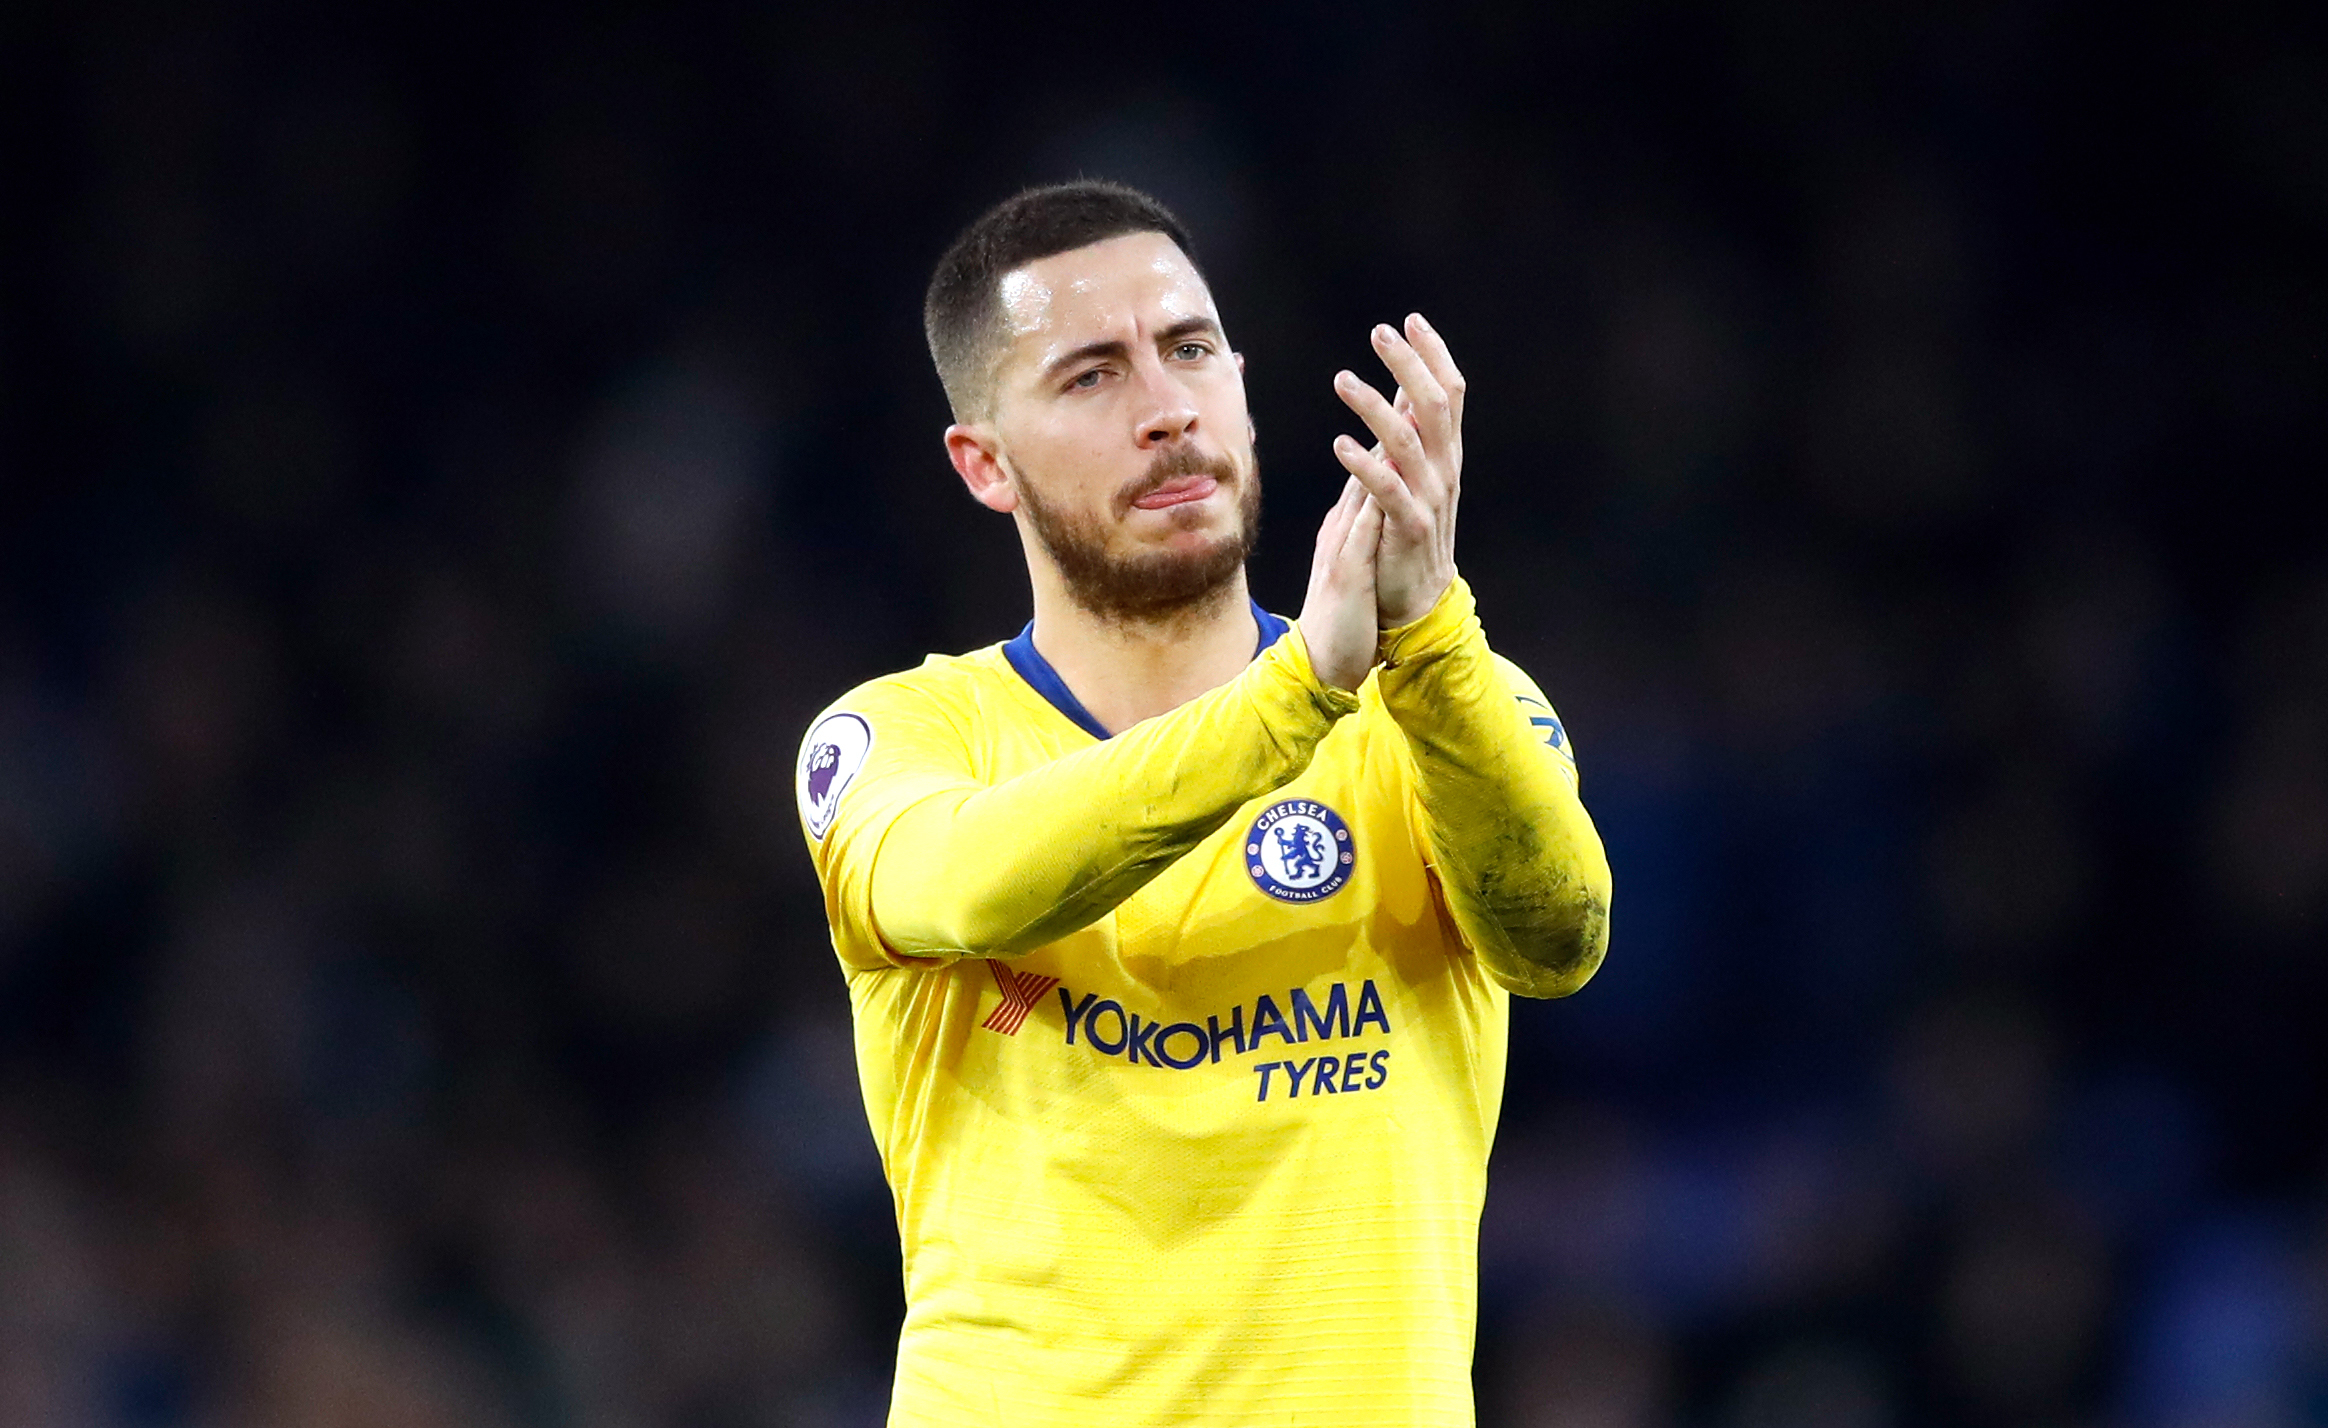 JUST IN: Chelsea prepared to lose Hazard for free